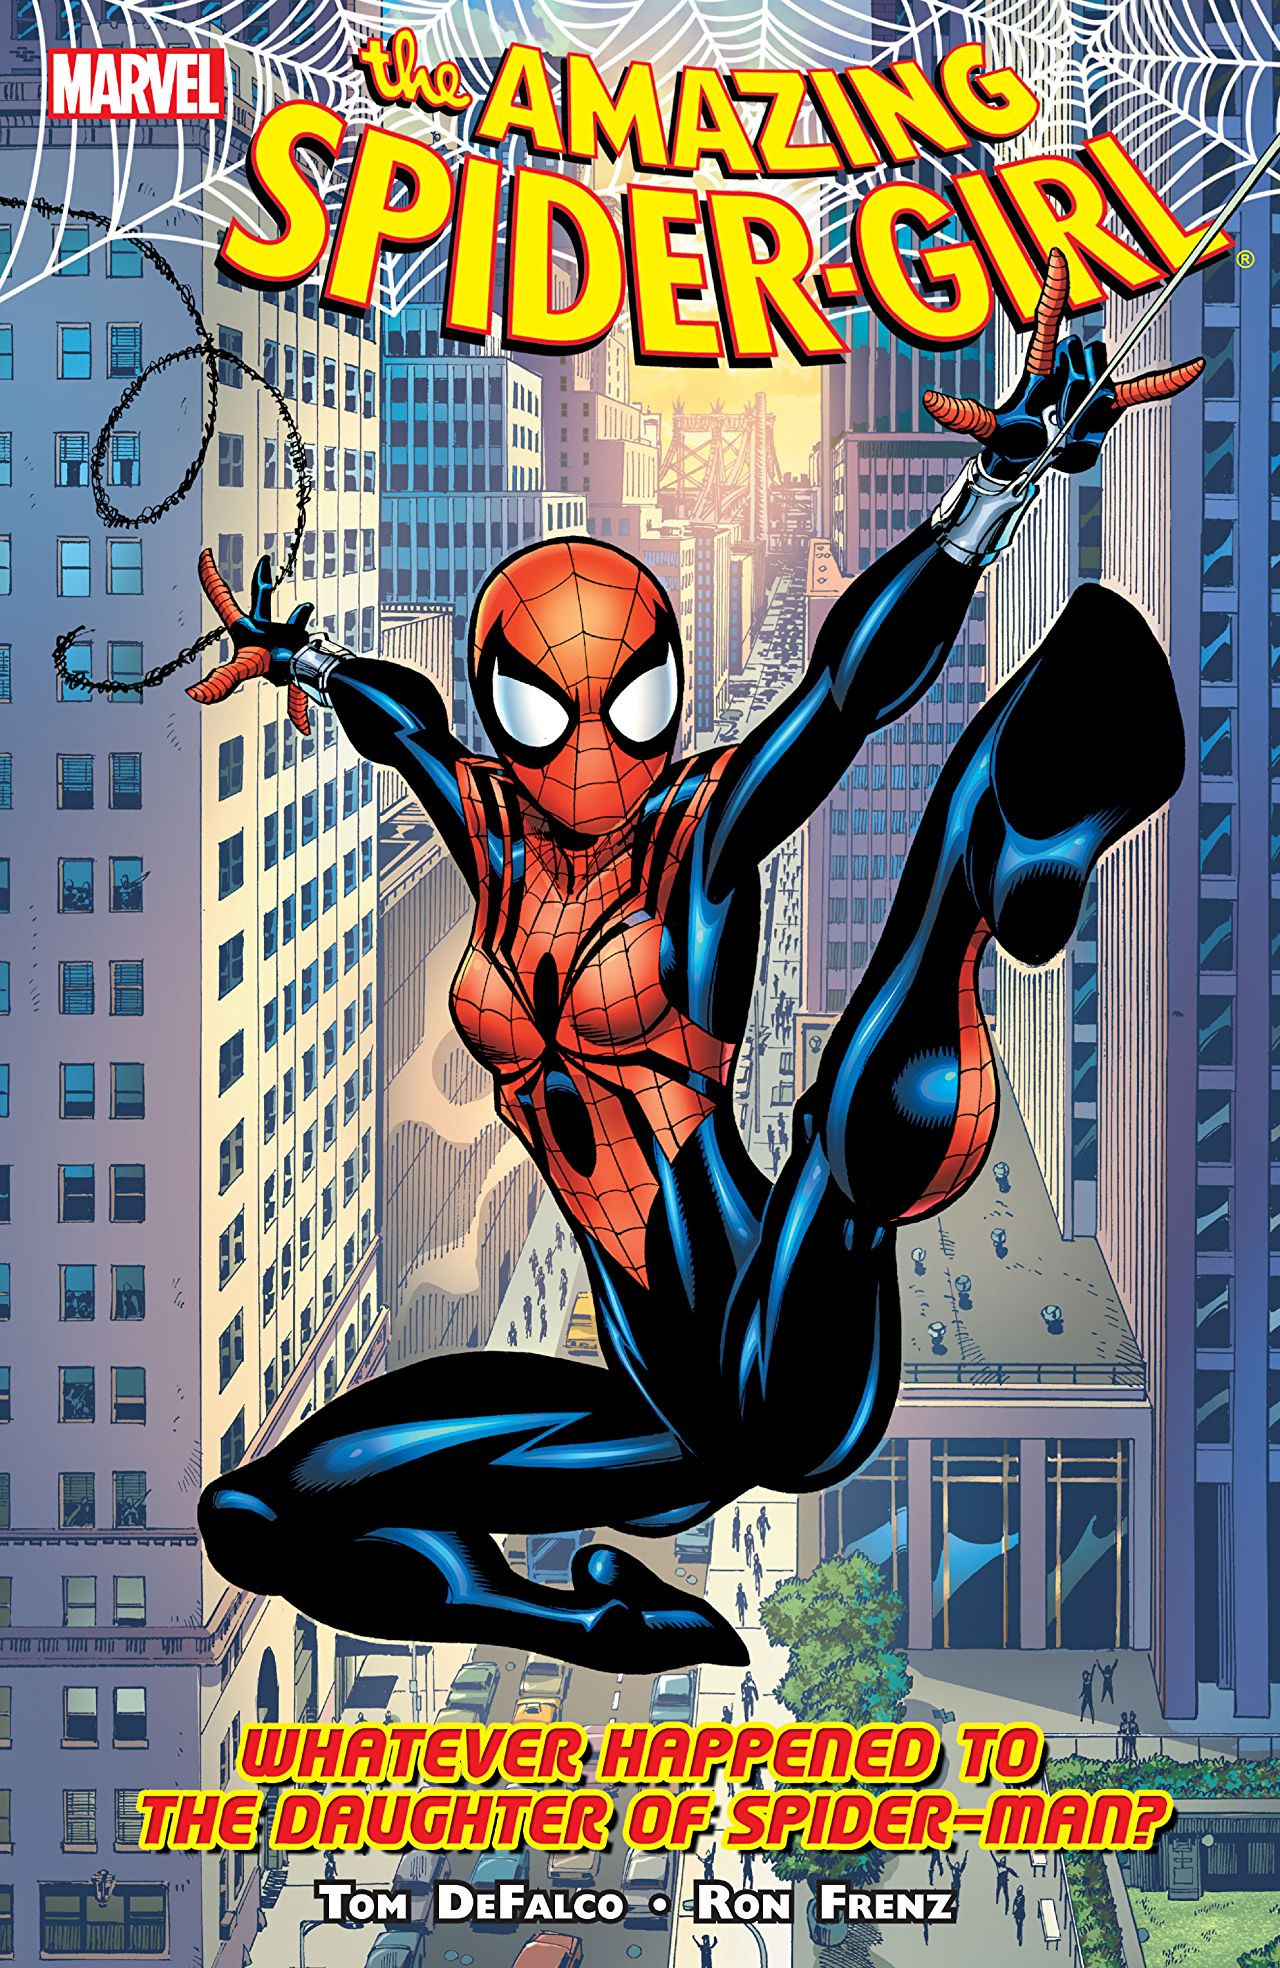 Amazing Spider-Girl TPB Vol 1 1: Whatever Happened to the Daughter of Spider-Man?